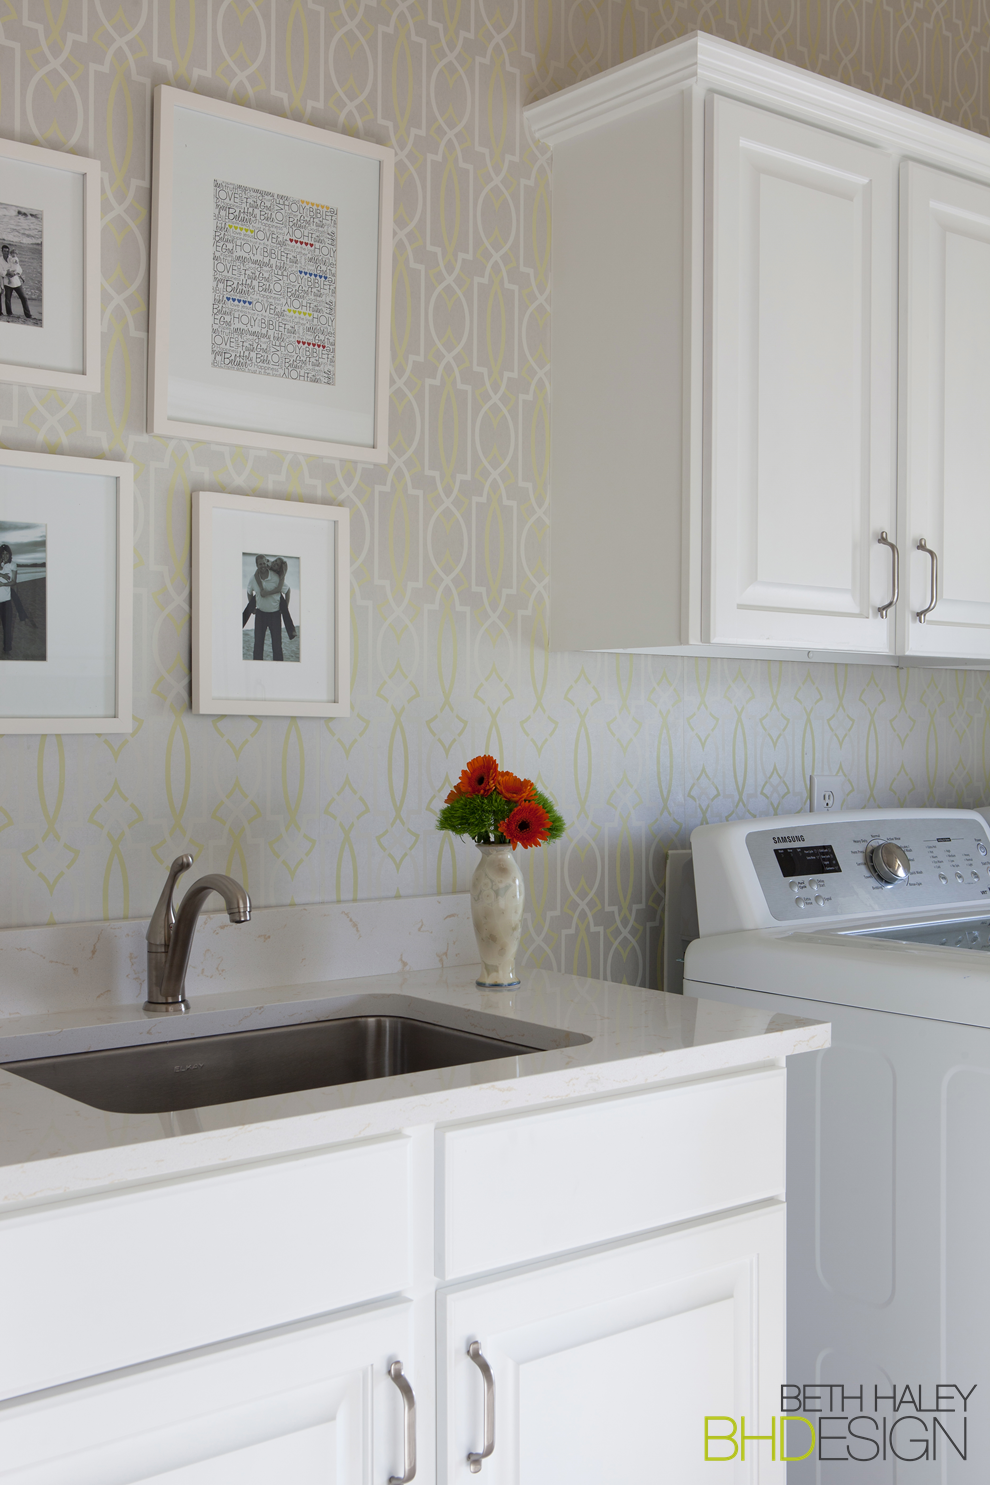 10x10 Laundry Room Layout: Laundry Room With Fun Wallpaper